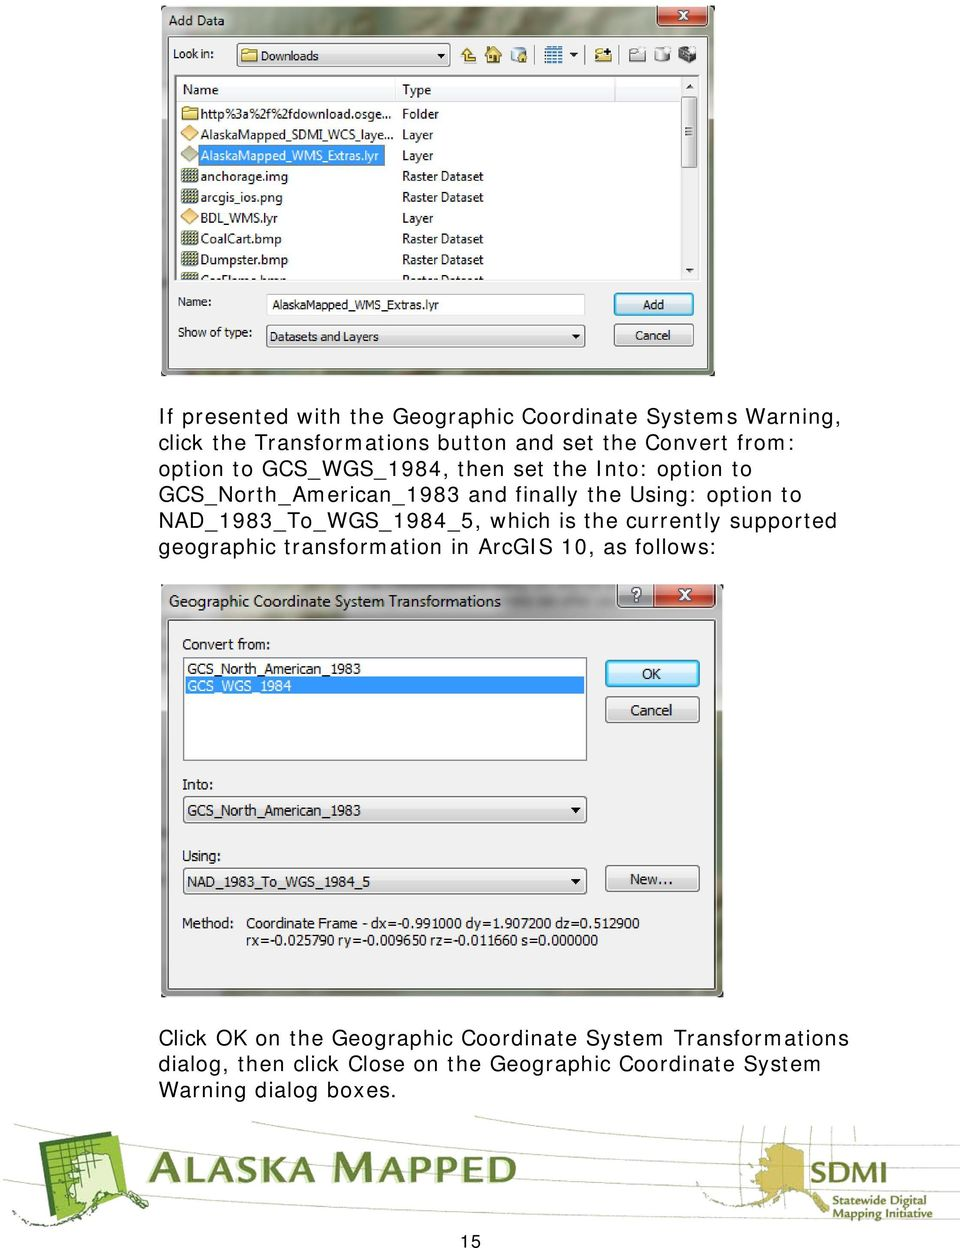 NAD_1983_To_WGS_1984_5, which is the currently supported geographic transformation in ArcGIS 10, as follows: Click OK on